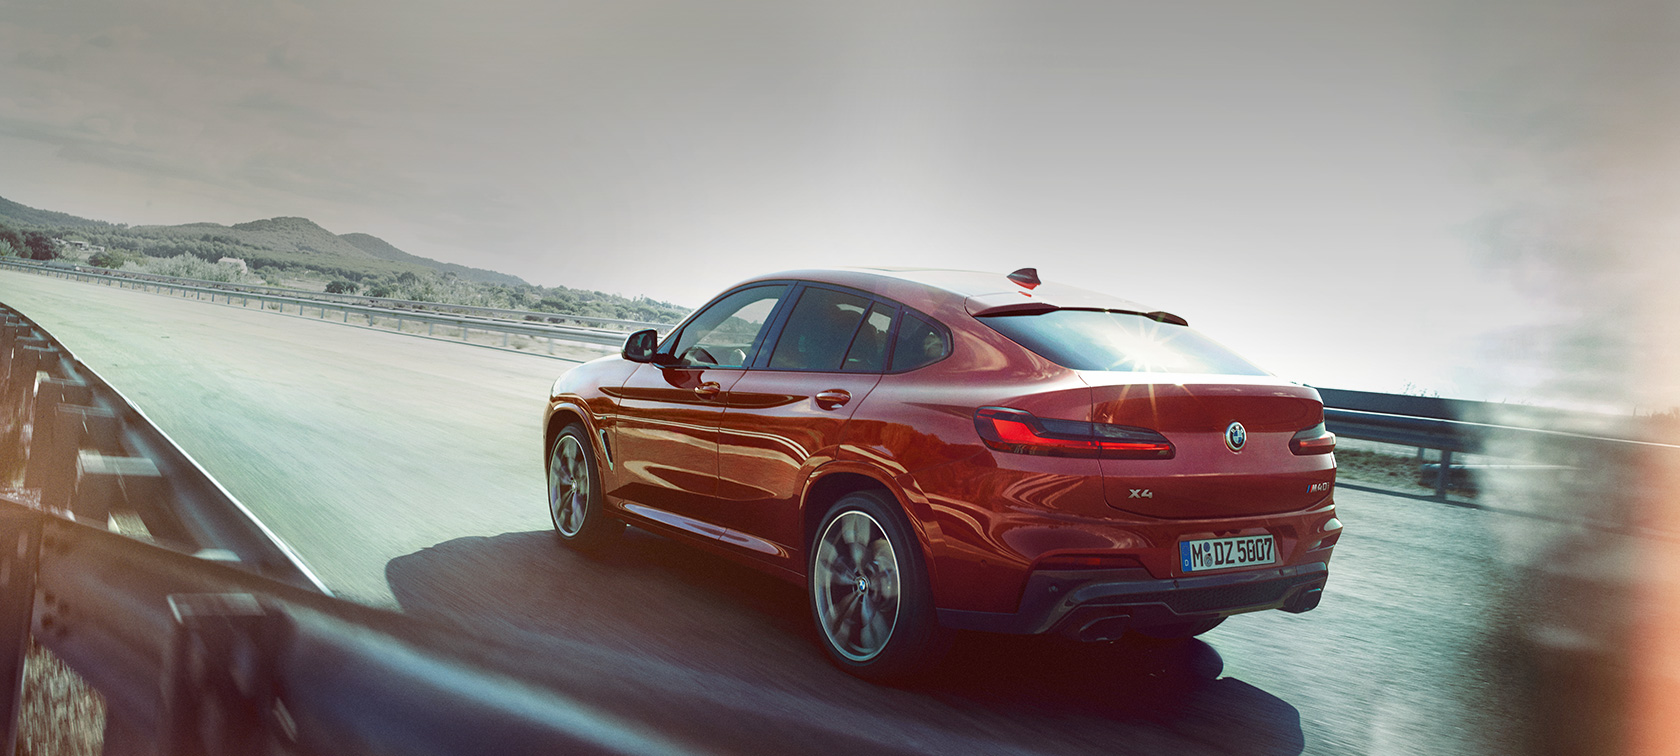 BMW X4 M40i G02 2018 toonis Flamenco Red Brilliant Effect, 3/4 tagantvaade, teel sõitmas